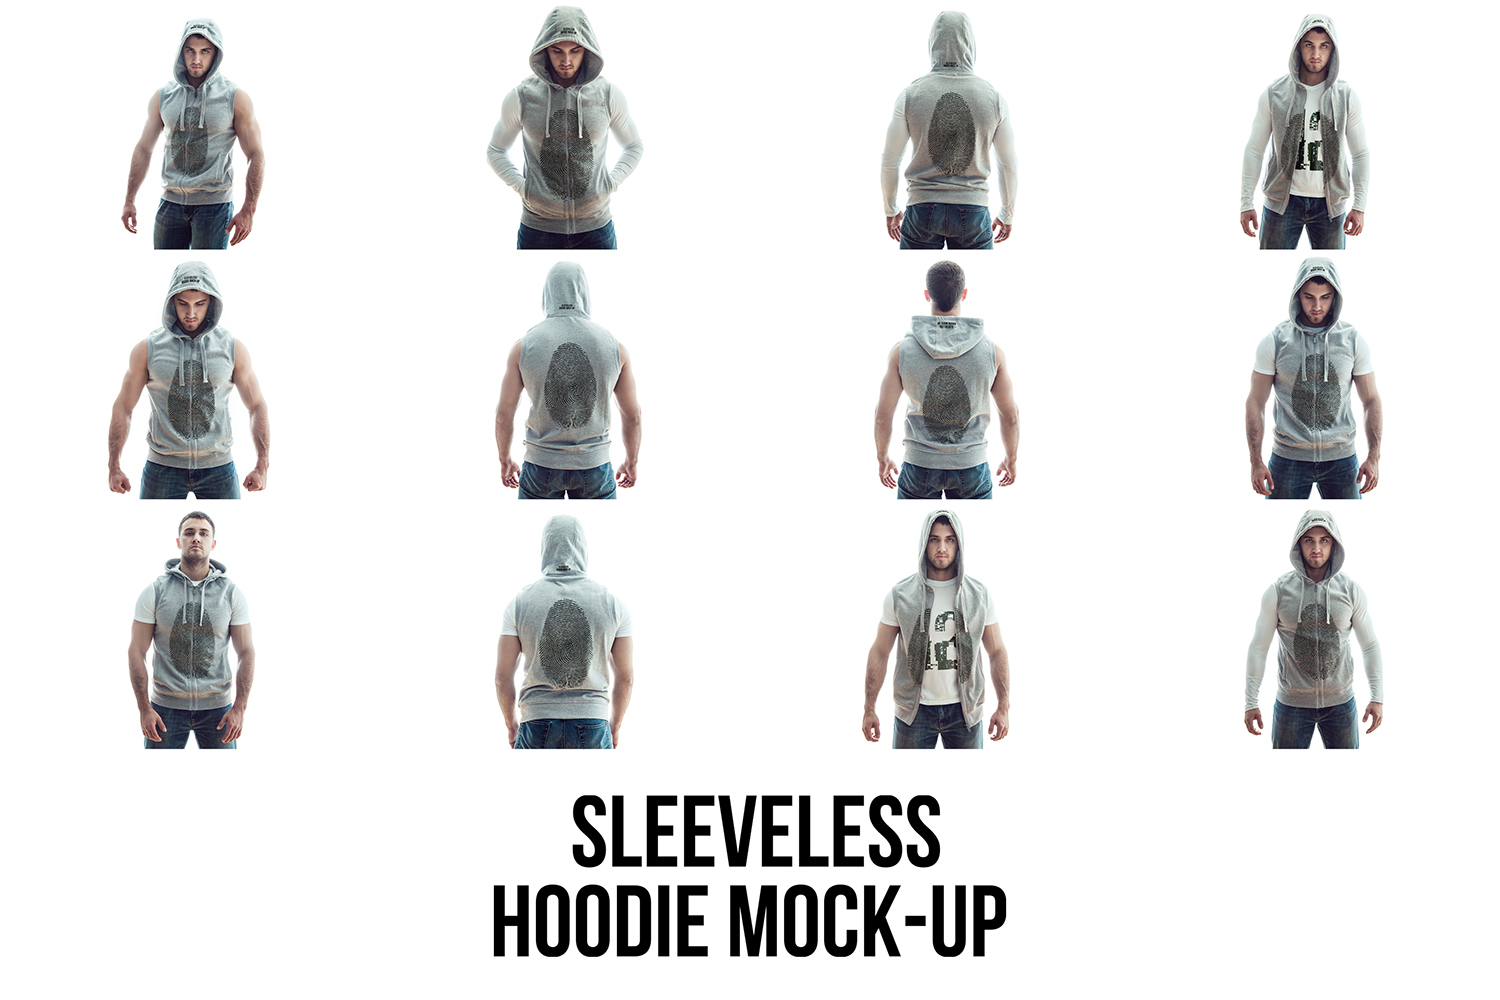 Sleeveless Hoodie Mock-Up example image 6